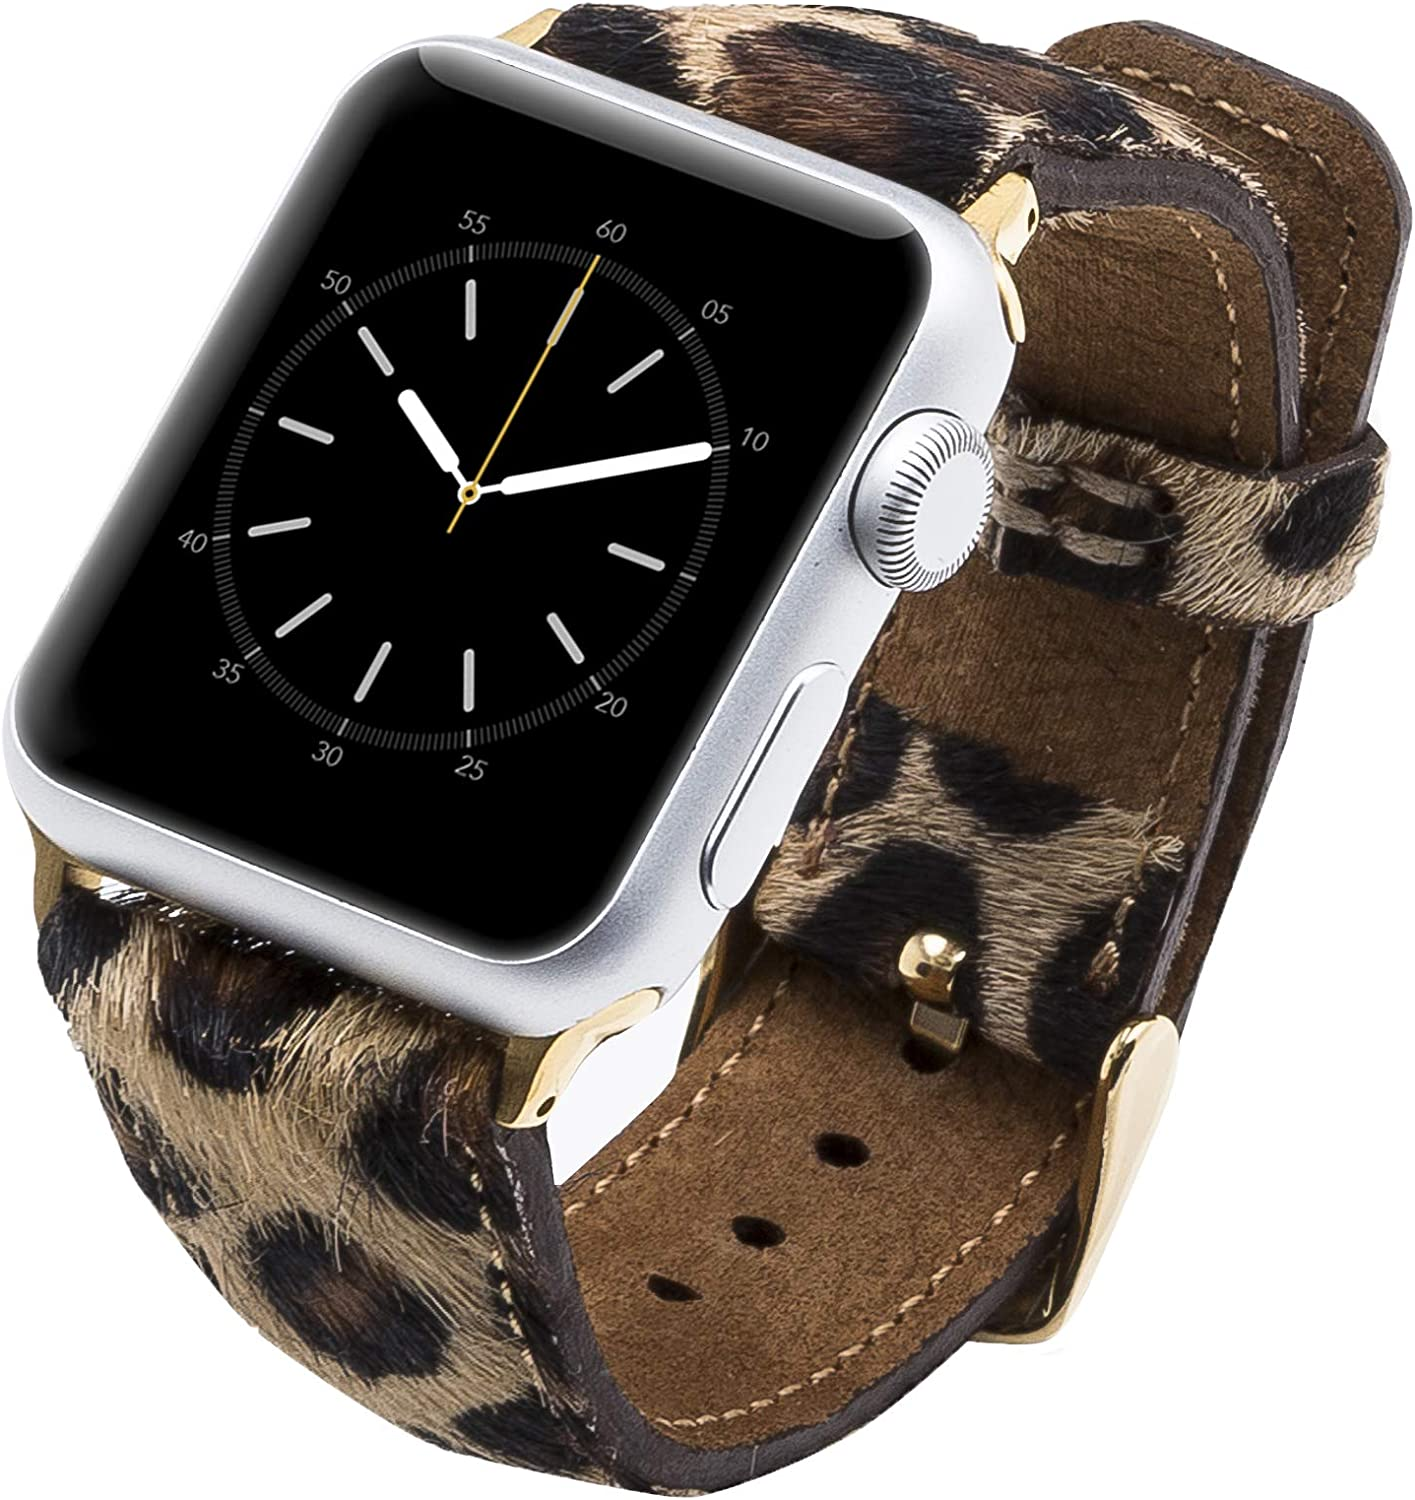 Venito Tuscany Leather Watch Band Compatible with Apple Watch 42mm 44mm - Watch Strap Designed for iwatch Series 1 2 3 4 5 6 (Furry Leopard w/Gold Connector & Clasp)